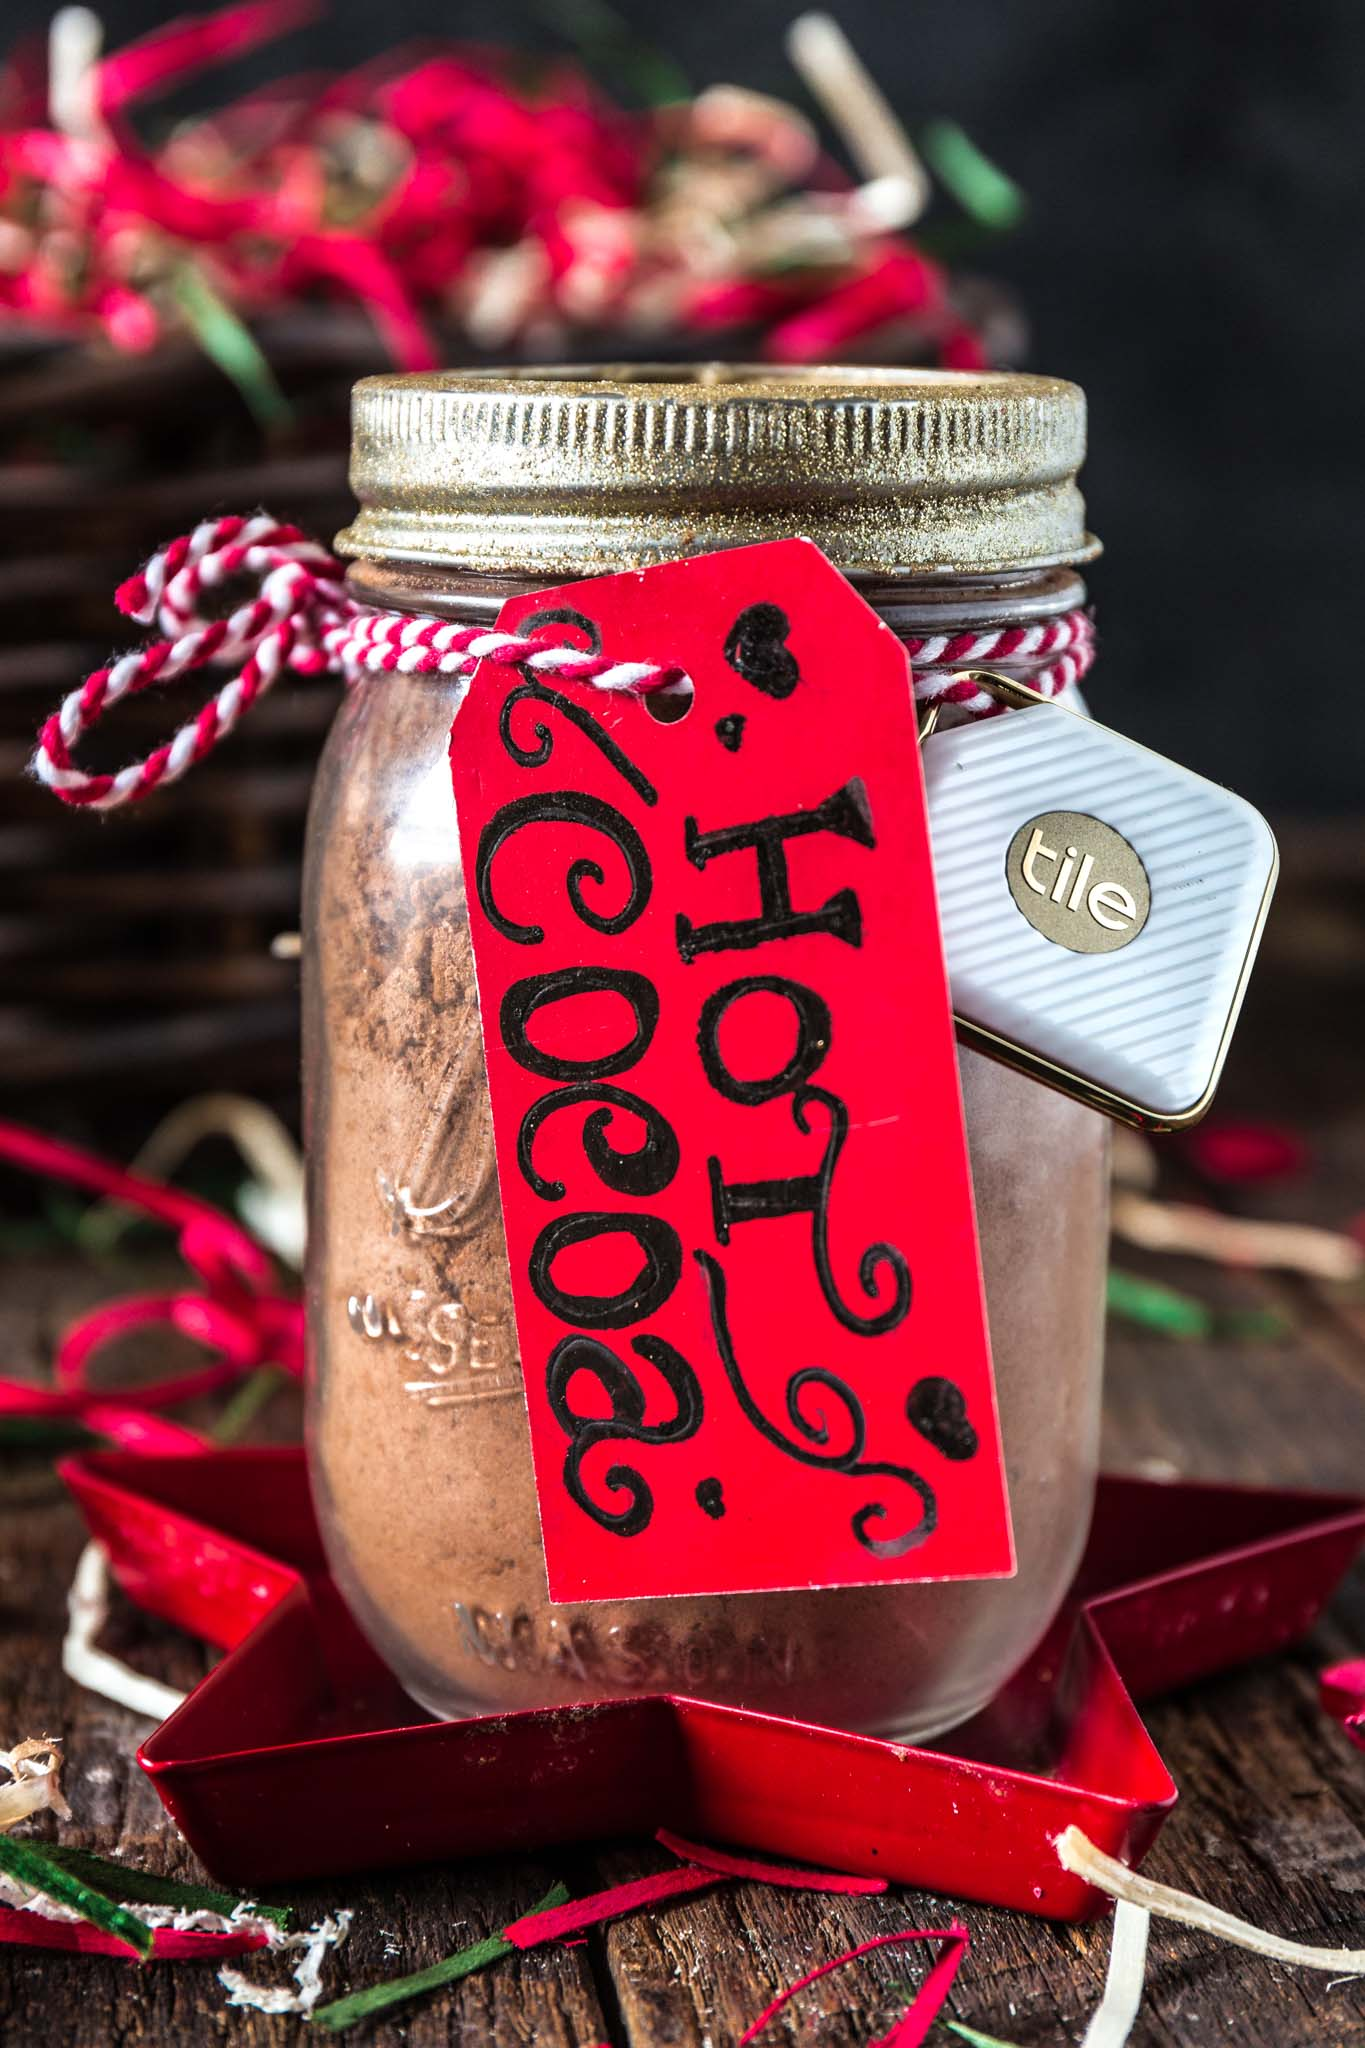 Hot Cocoa Mix   www.oliviascuisine.com   Make the holidays even sweeter by gifting this delicious and festive hot cocoa mix to your loved ones! (Recipe and food photography by @oliviascuisine.)